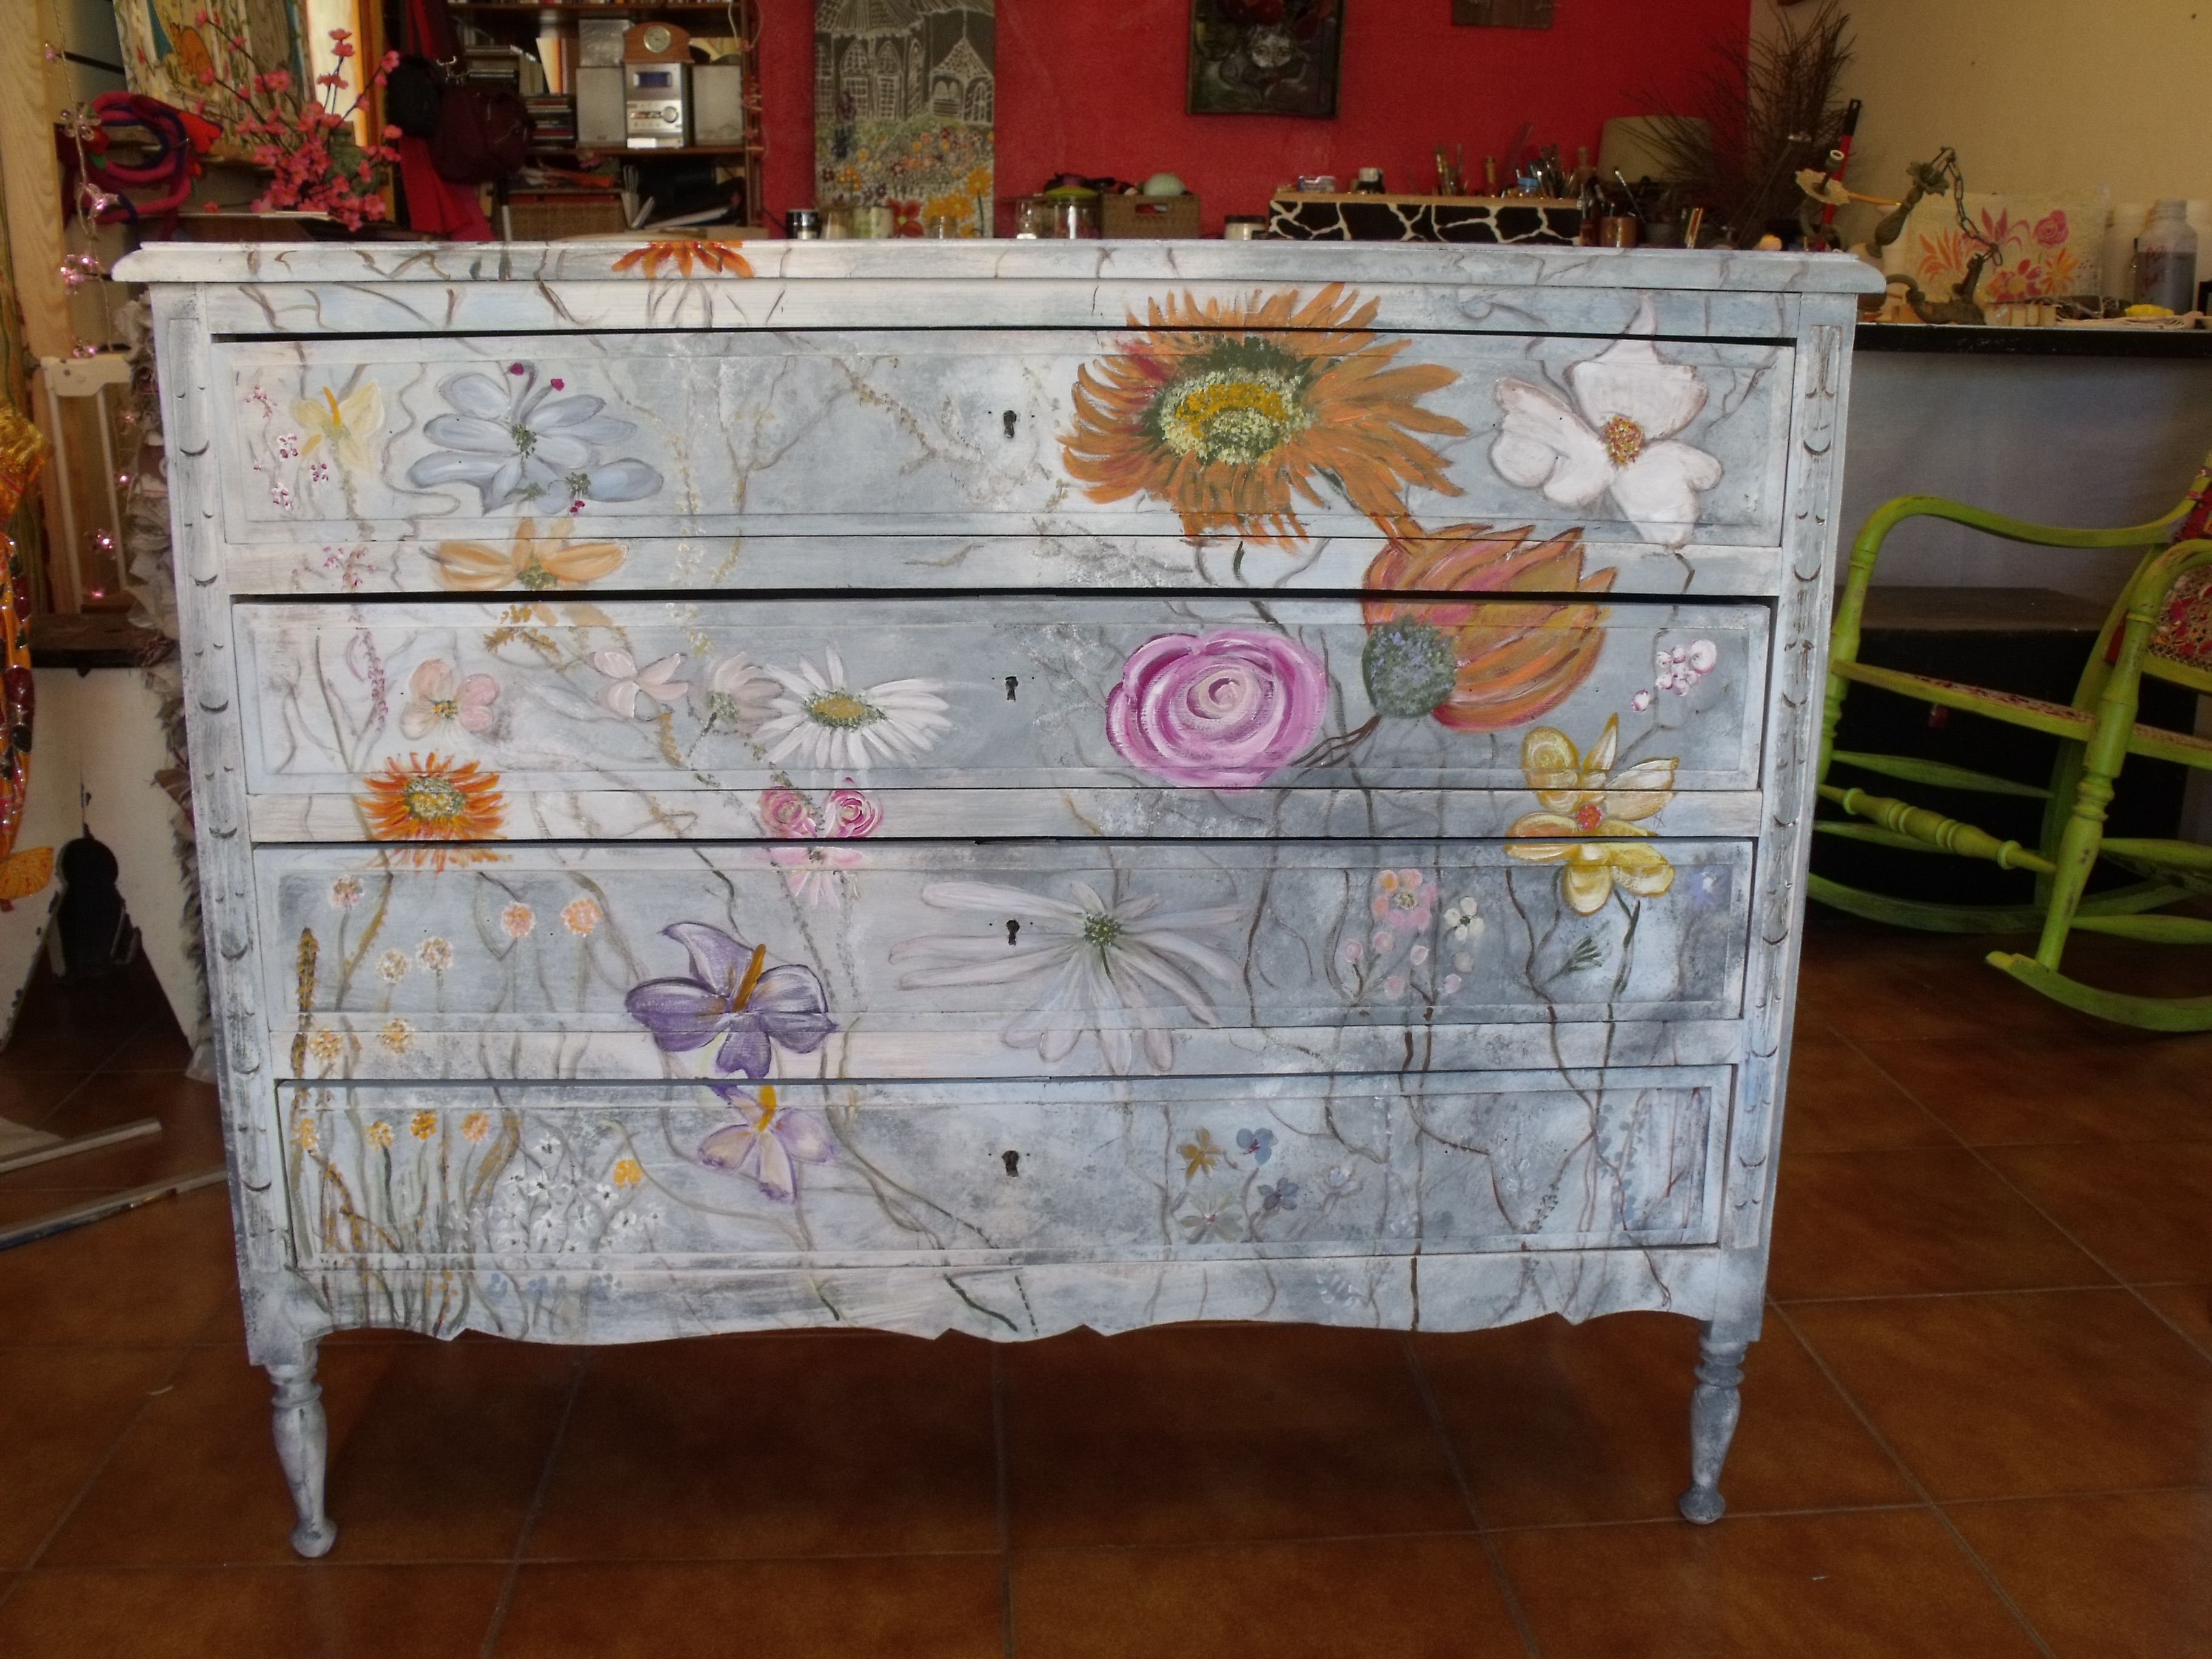 Reciclado De Muebles An Old Chest Of Drawers Painted With Flowers Furniture